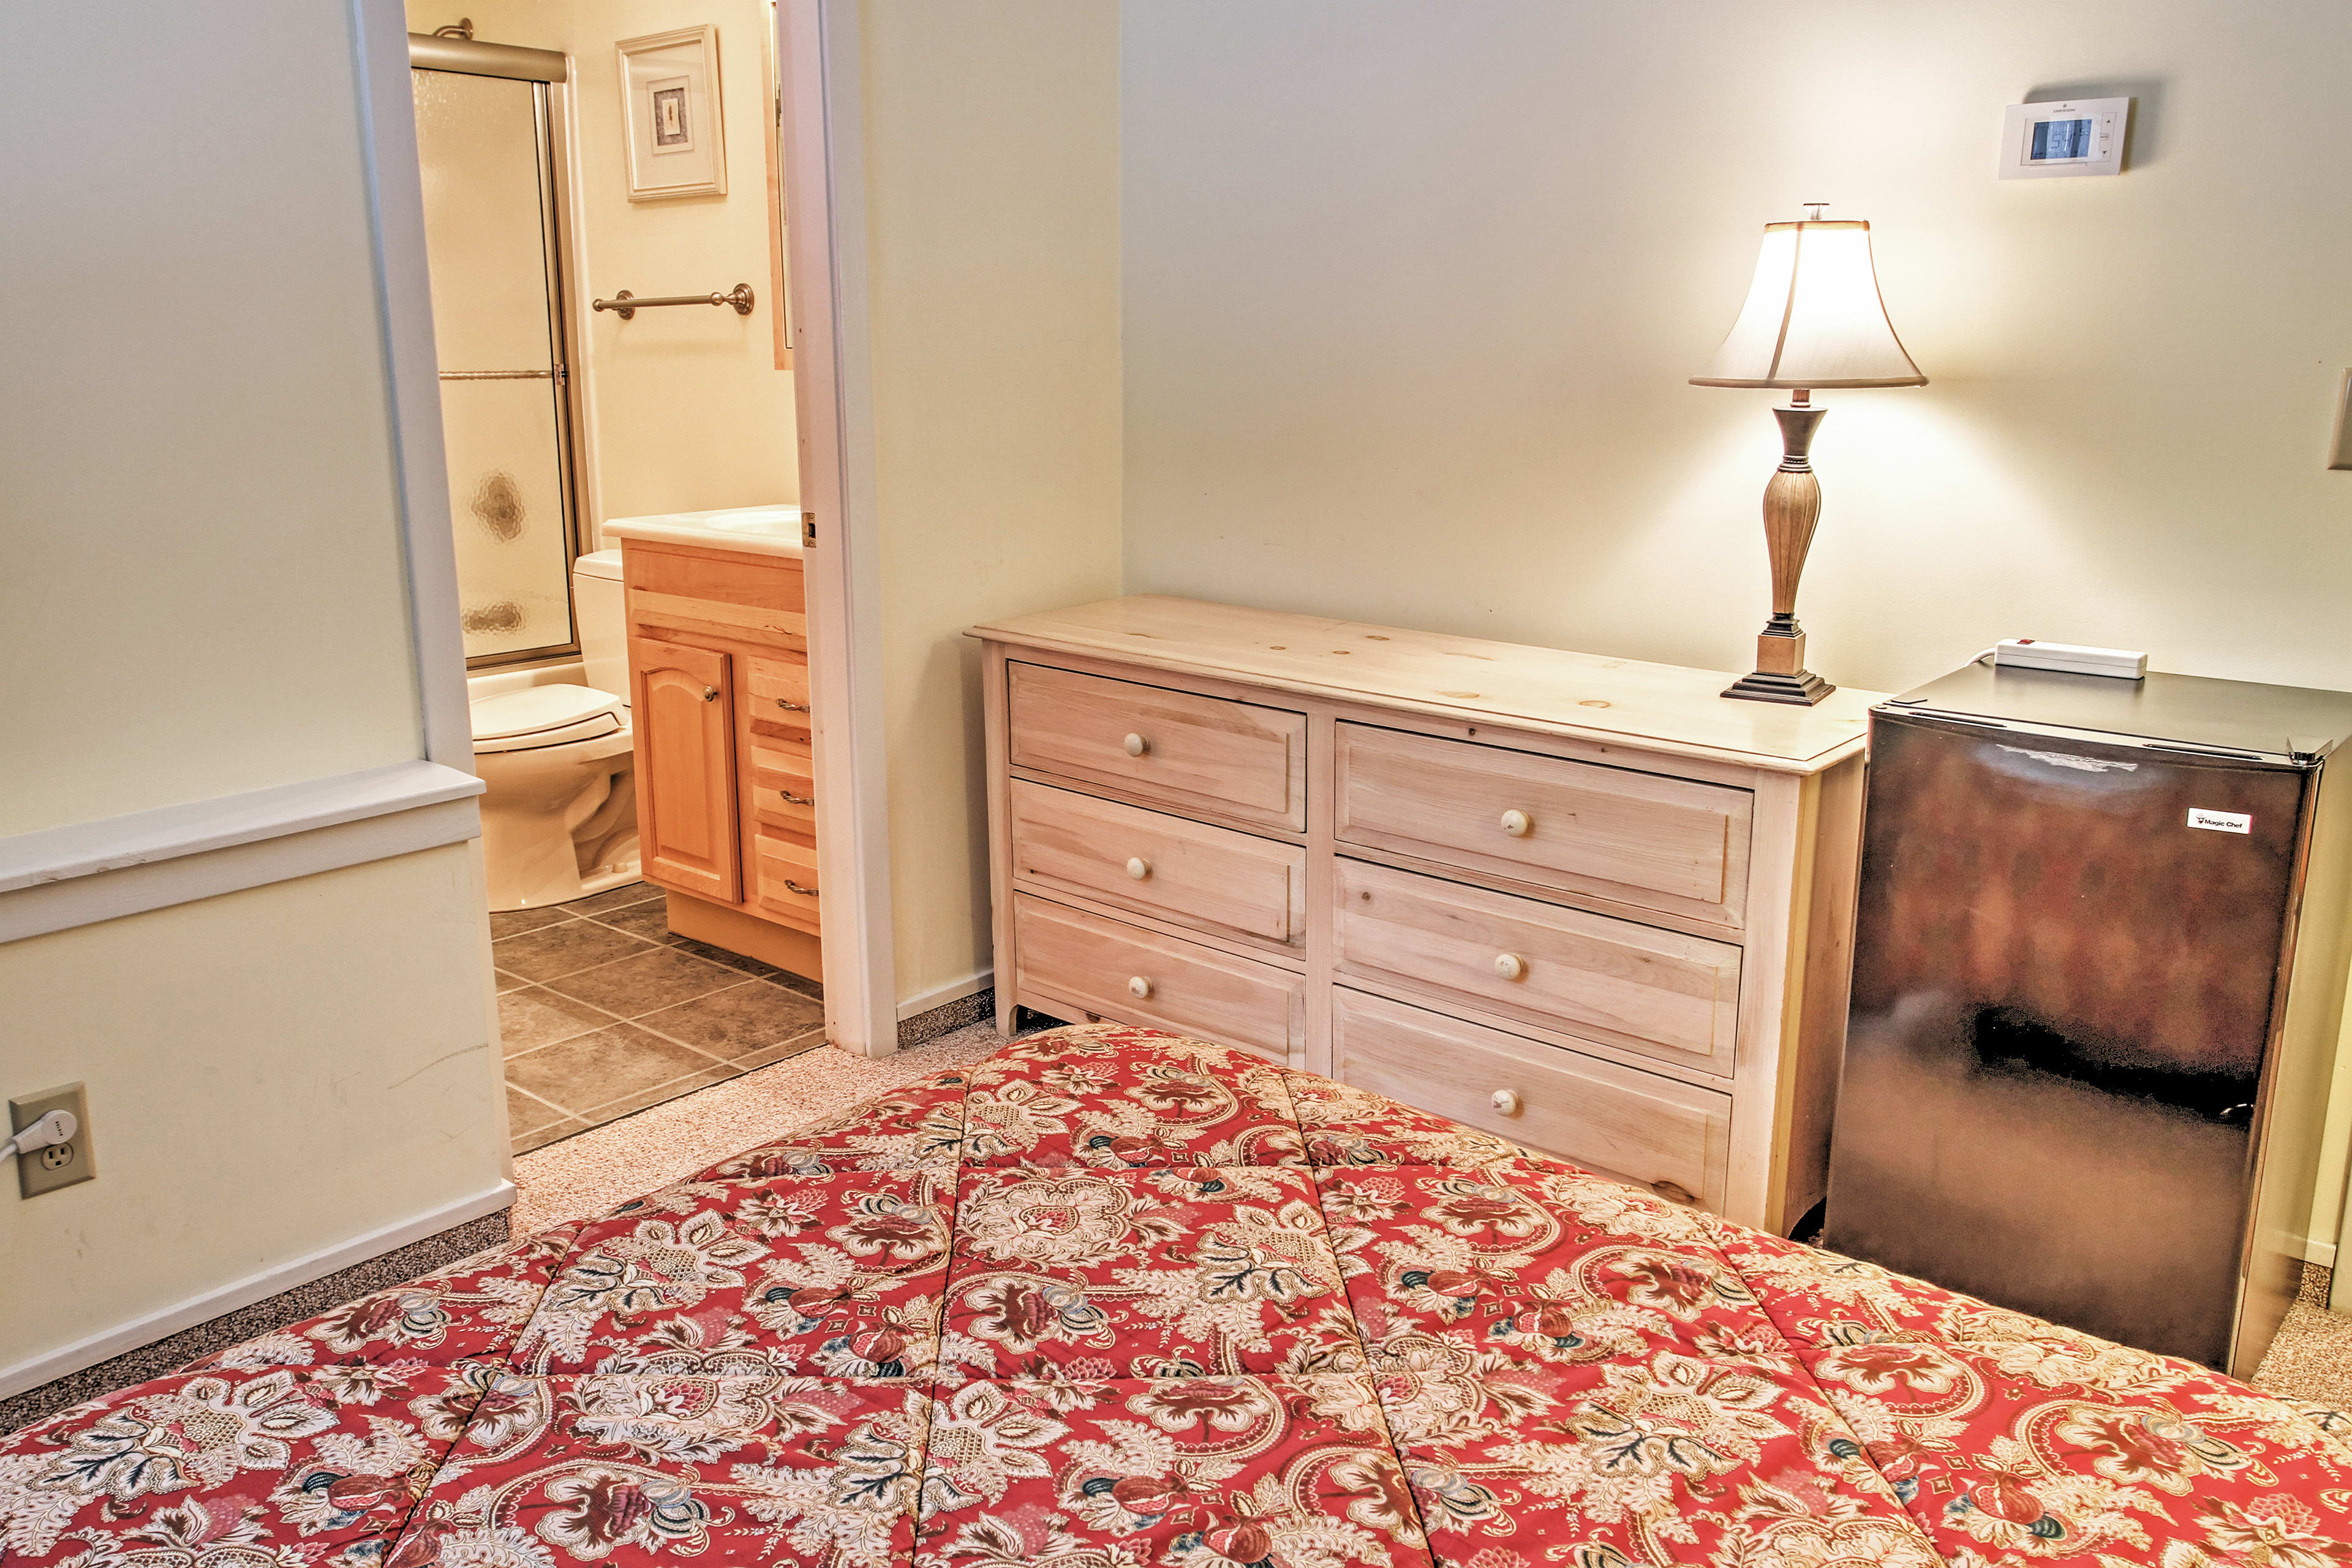 keep your belongings stored in the dresser.